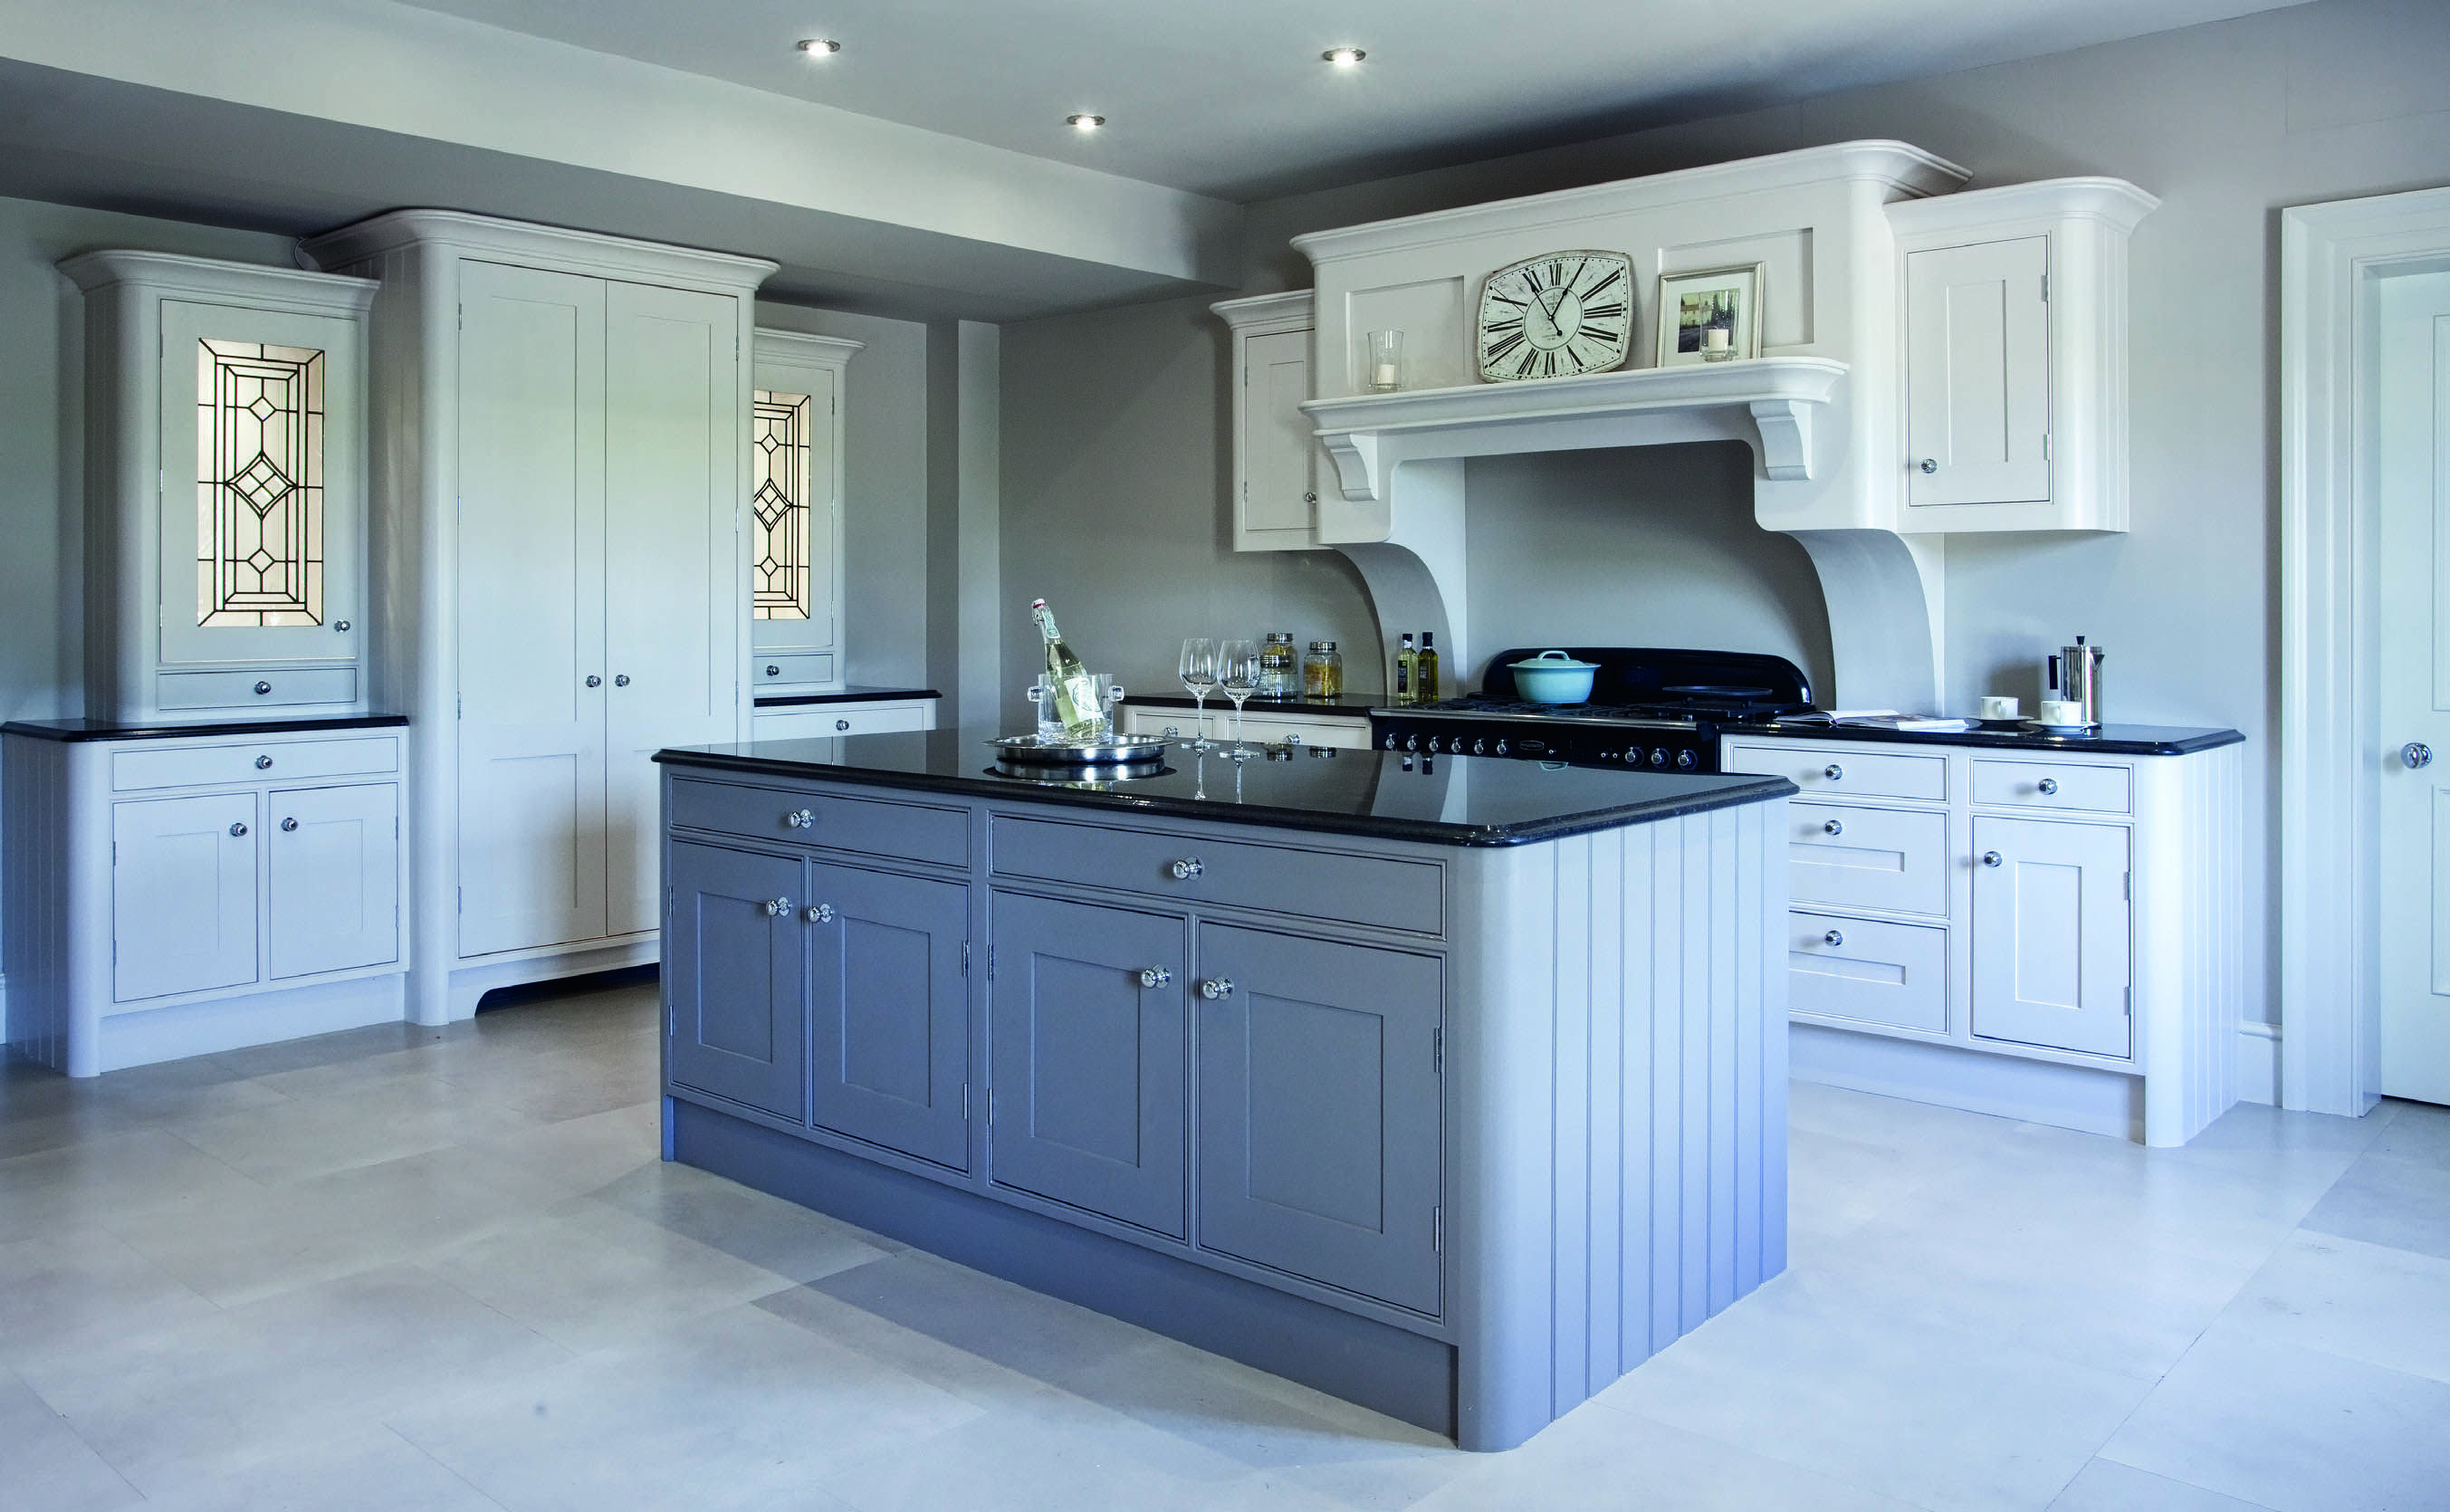 Woodmarque kitchens, furniture & dressing rooms | Woodmarque ...